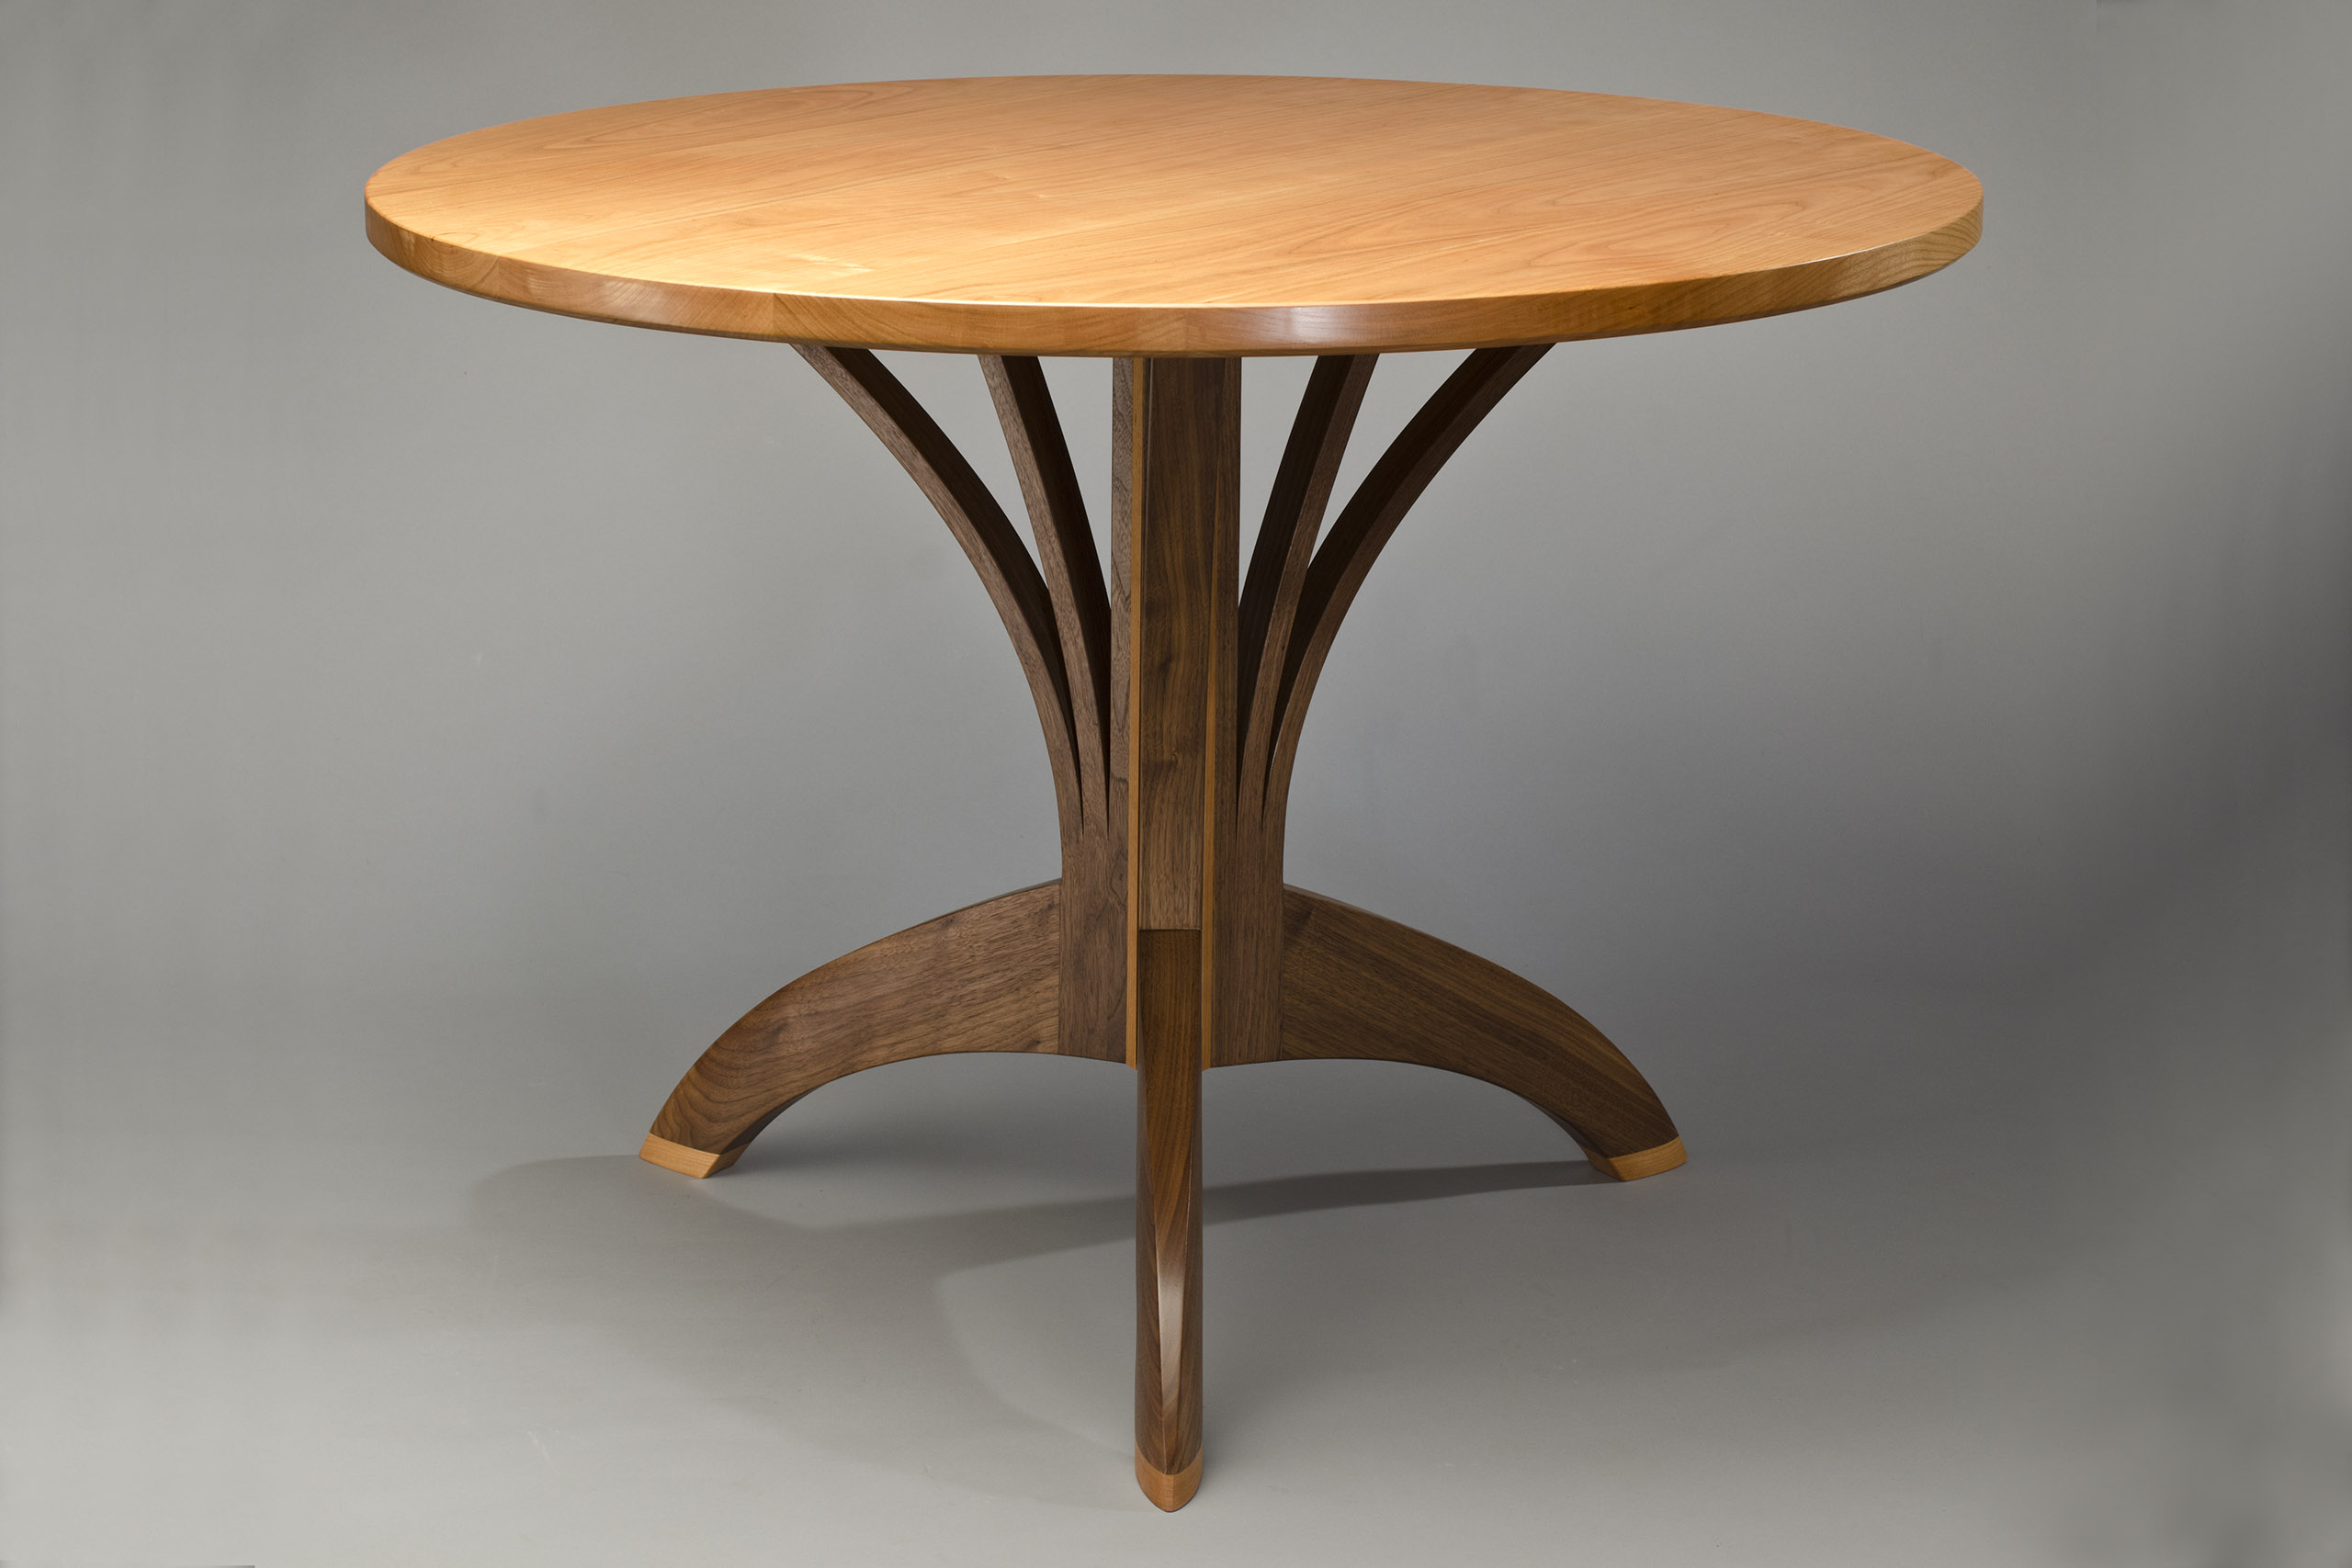 Cafe Tables Arbol Café Table Artisan Hardwood Dining Table Seth Rolland